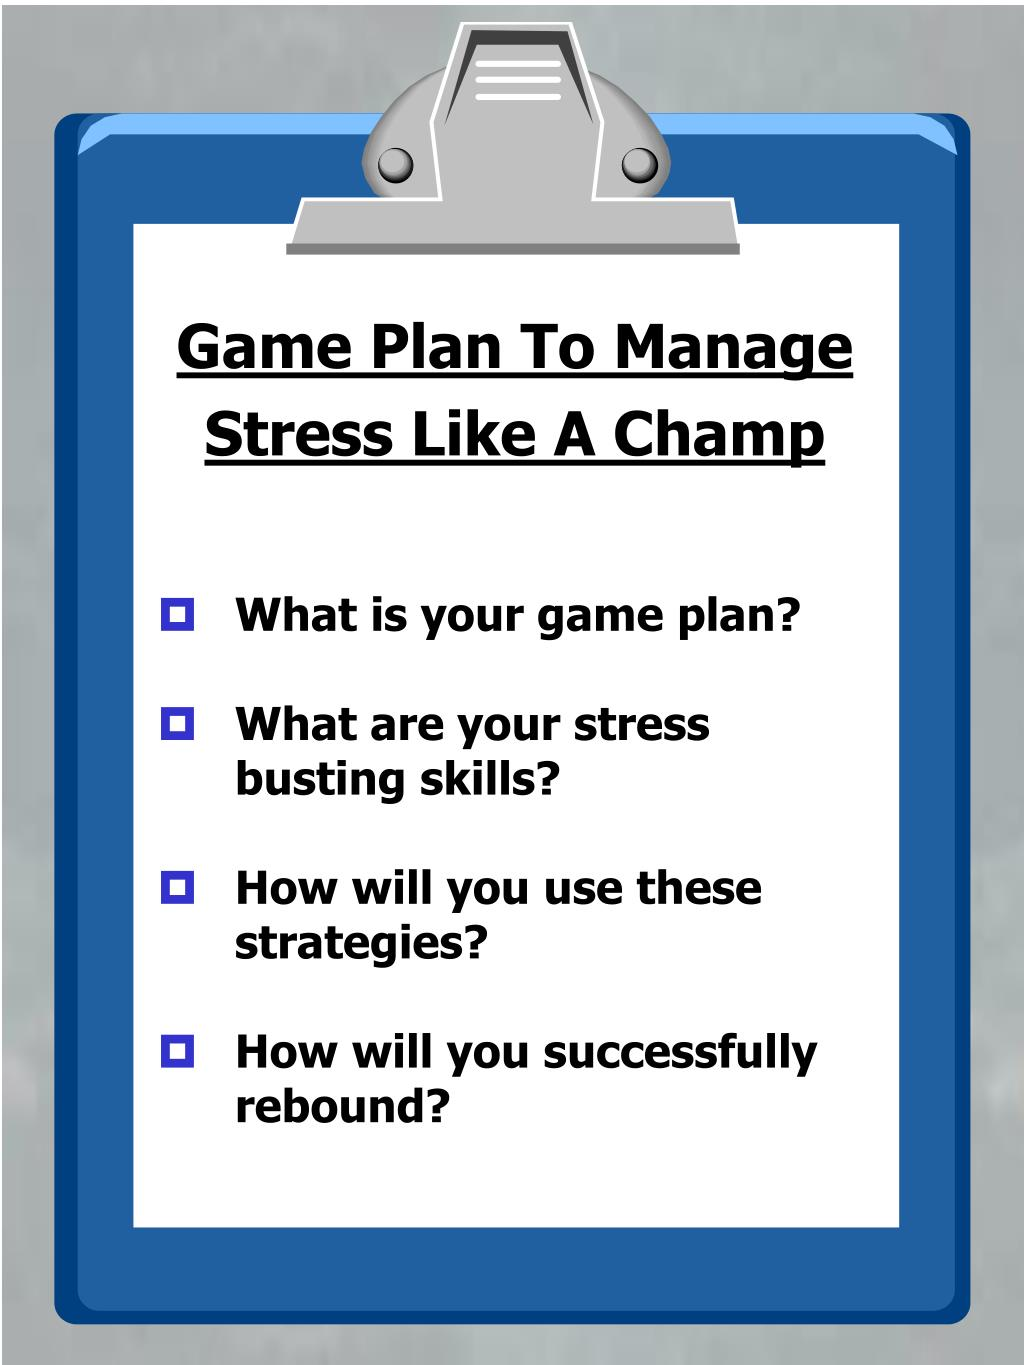 Game Plan To Manage Stress Like A Champ